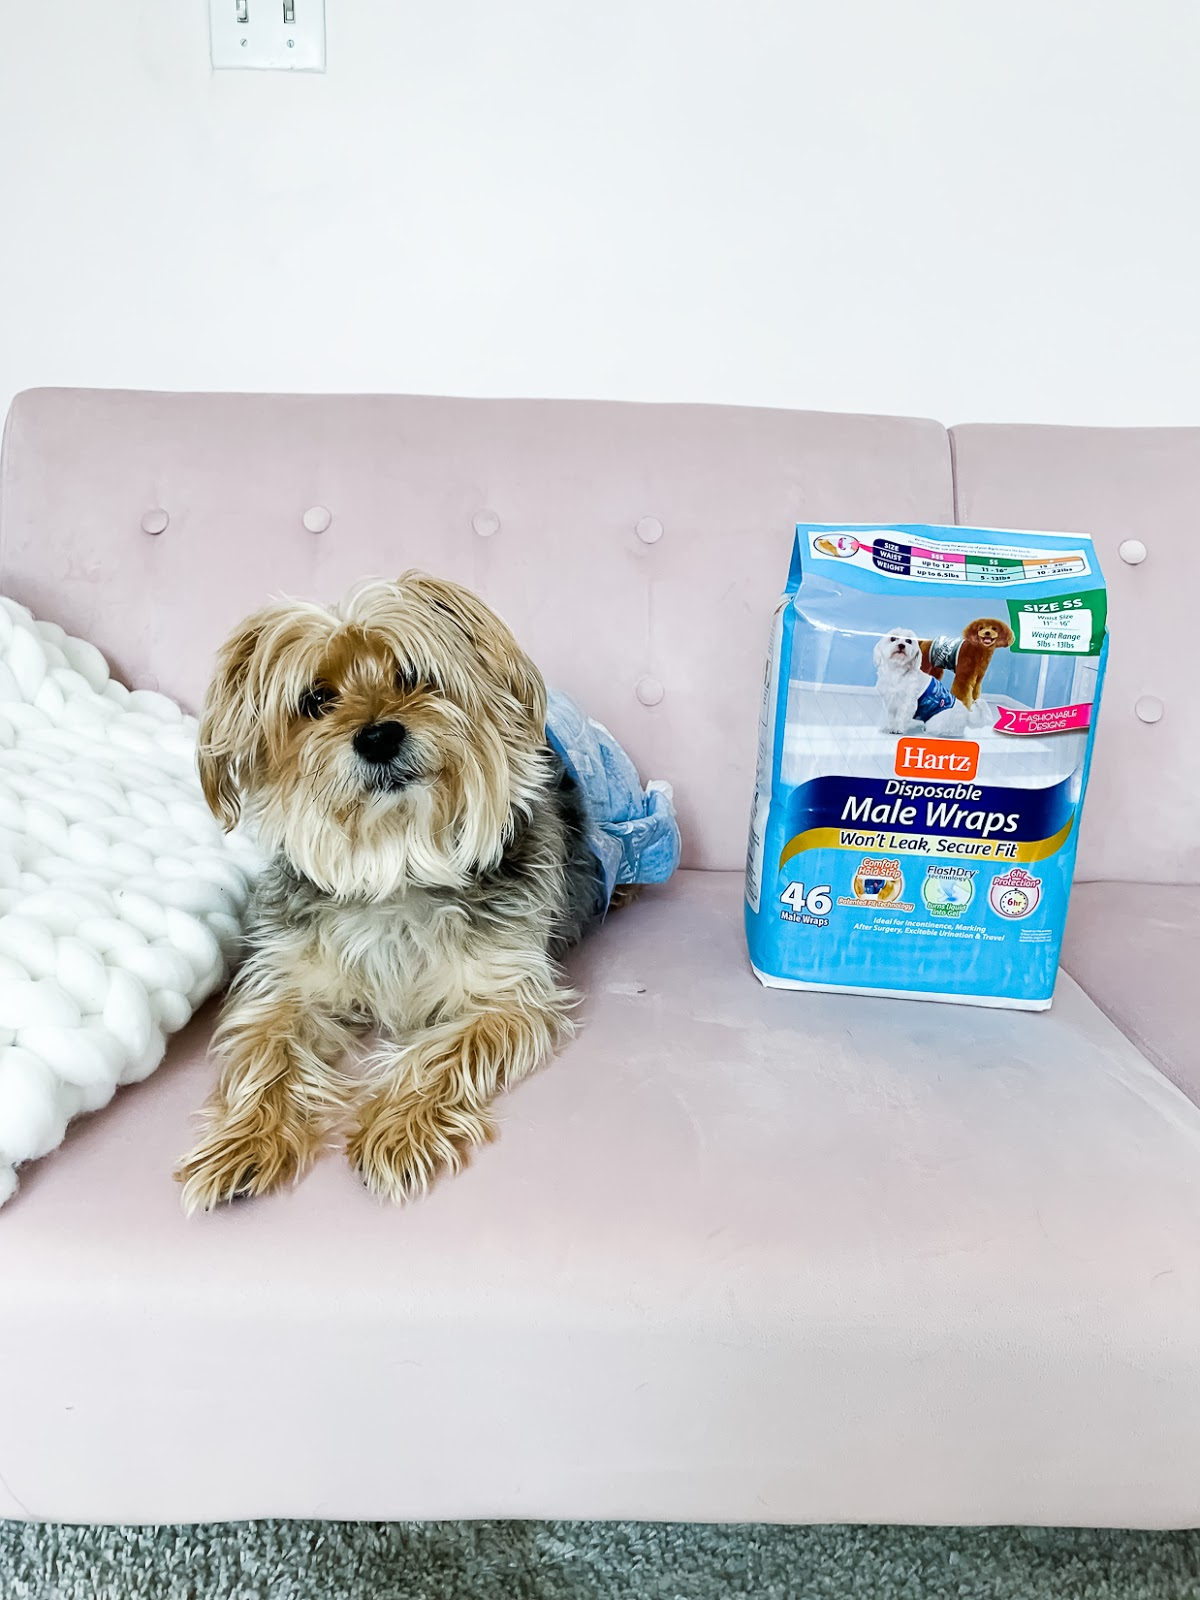 How To Prevent Your Dog From Peeing In The House - Chasing Cinderella